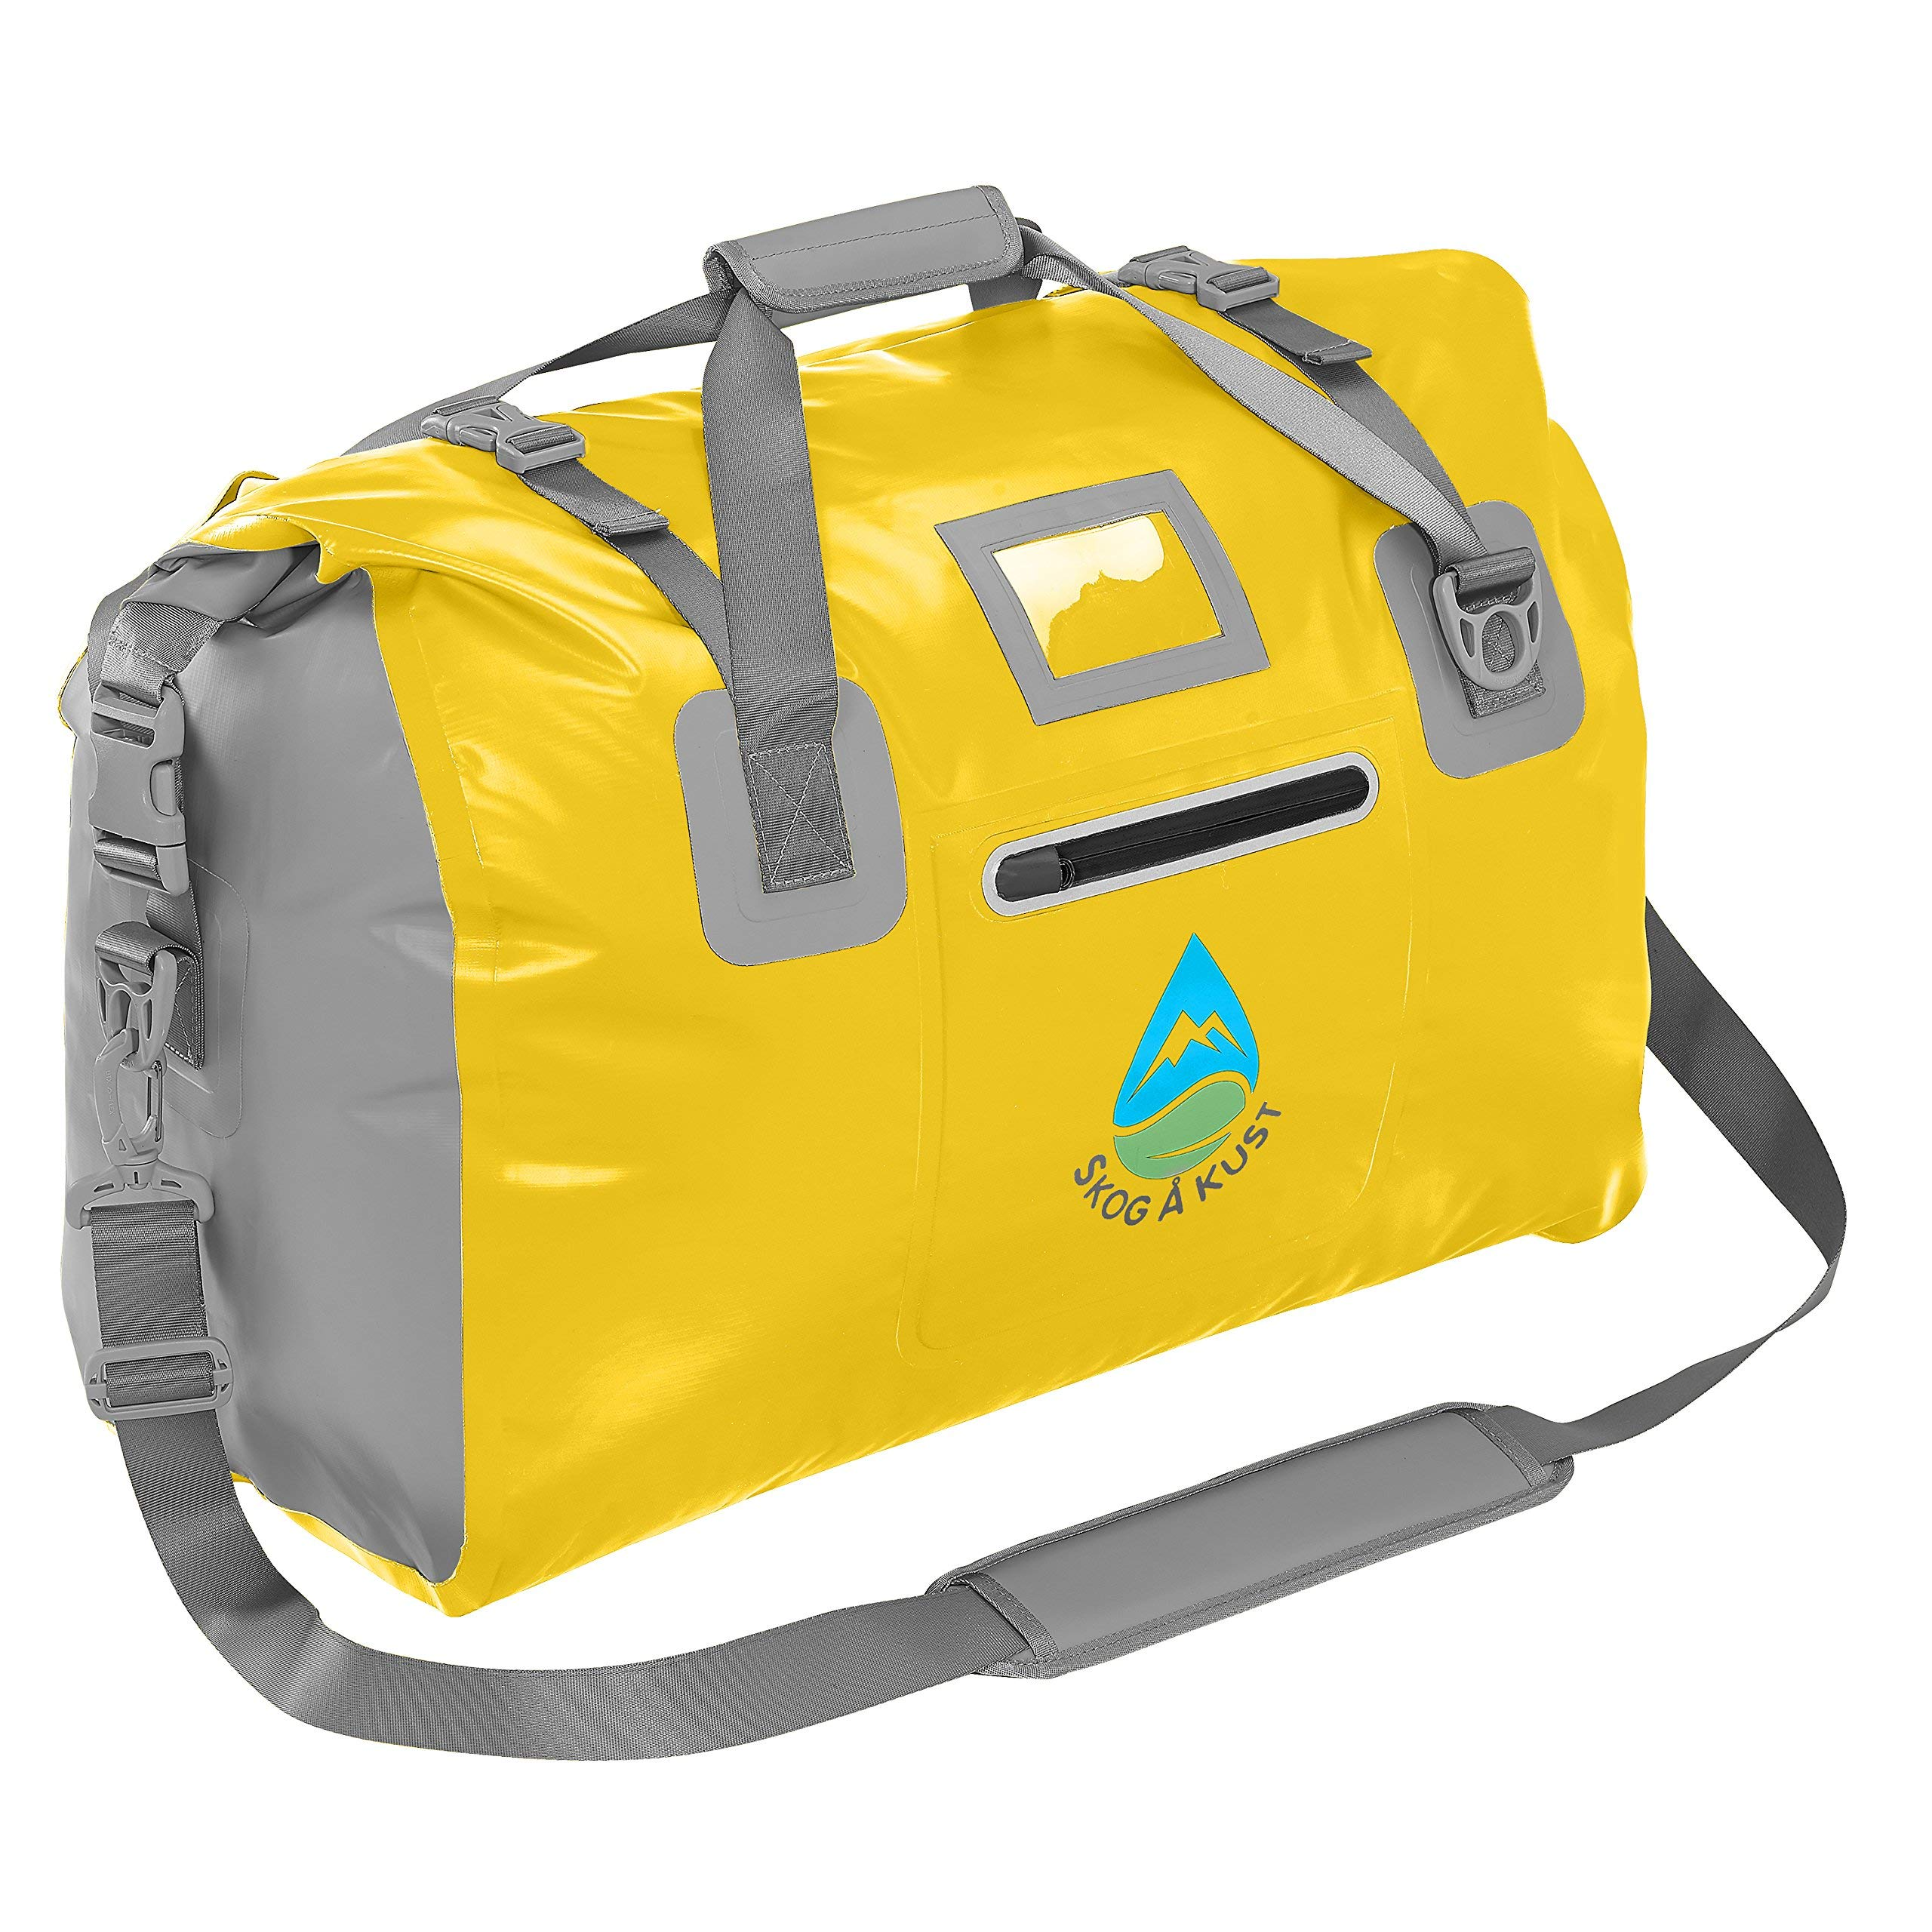 Skog Å Kust DuffelSak Waterproof Duffel Bag | 60L Yellow by Skog Å Kust